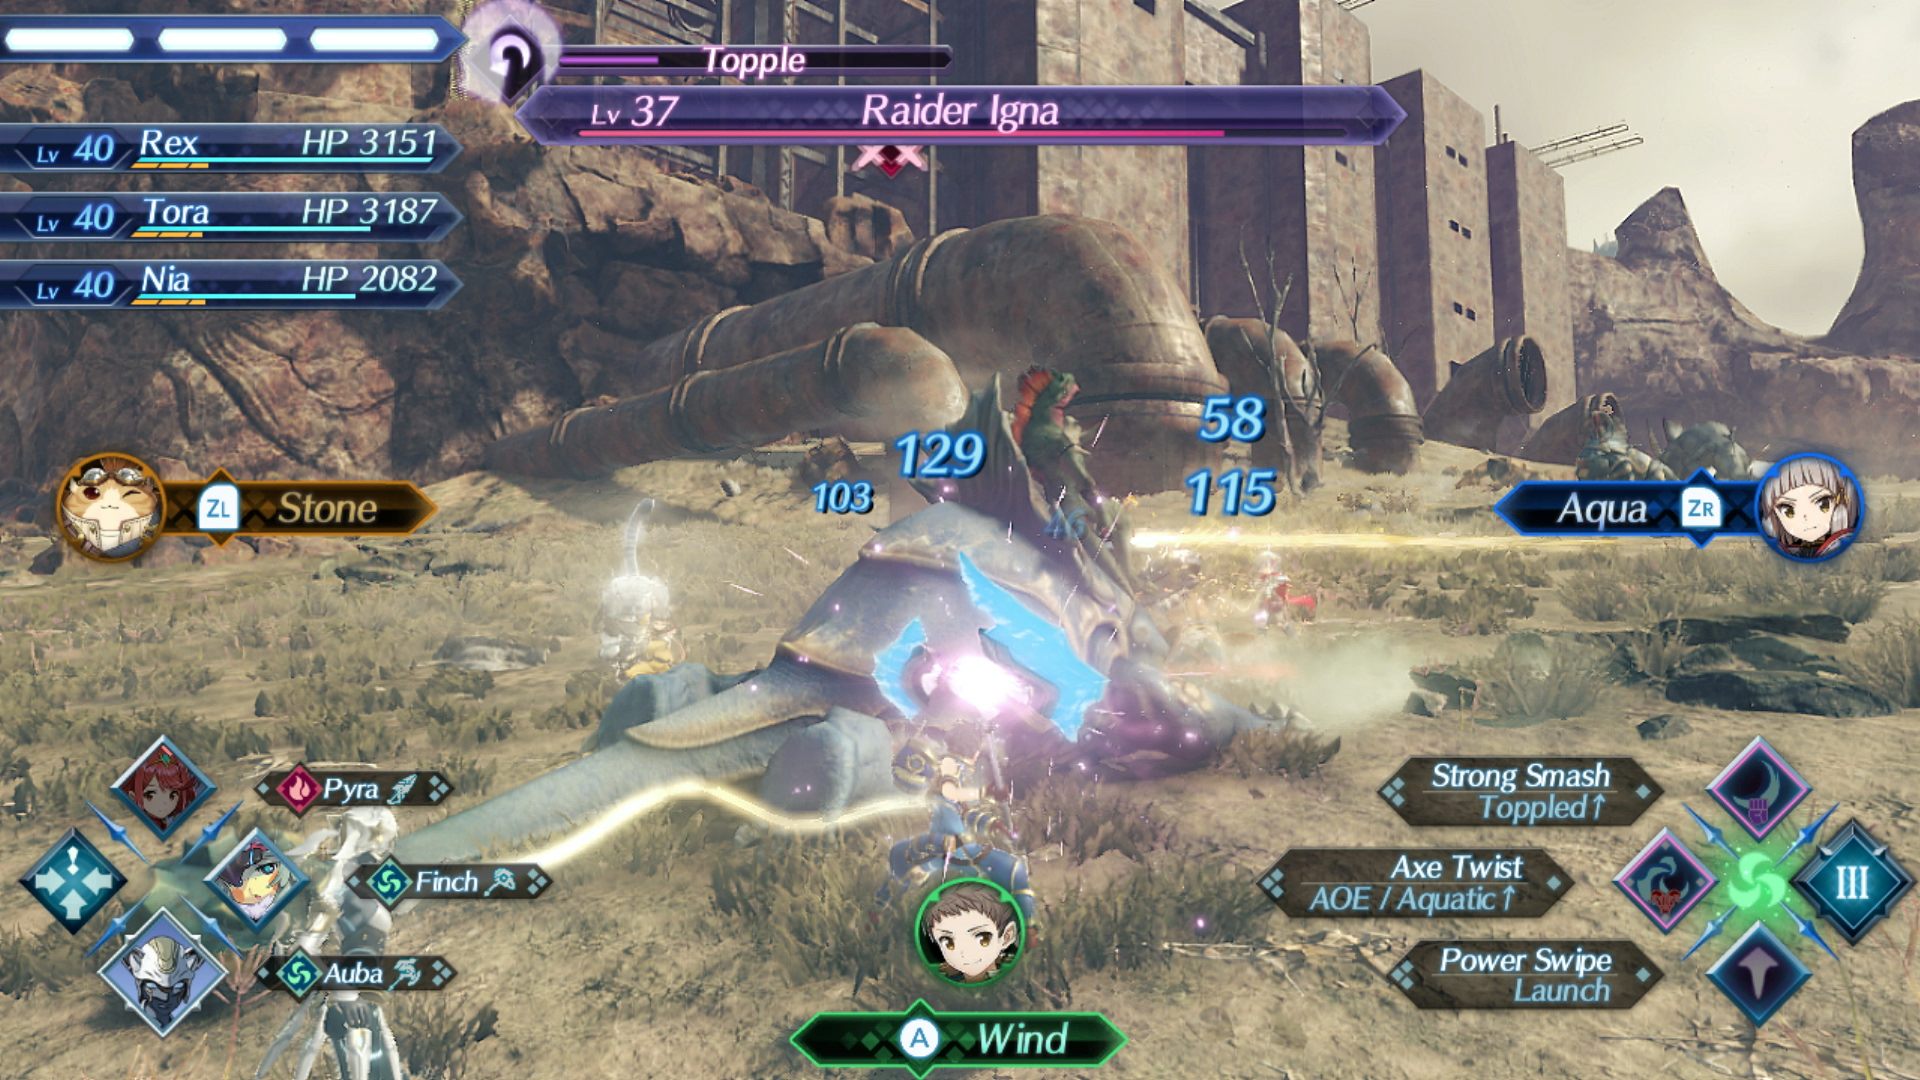 Xenoblade_Chronicles_2_screenshot3